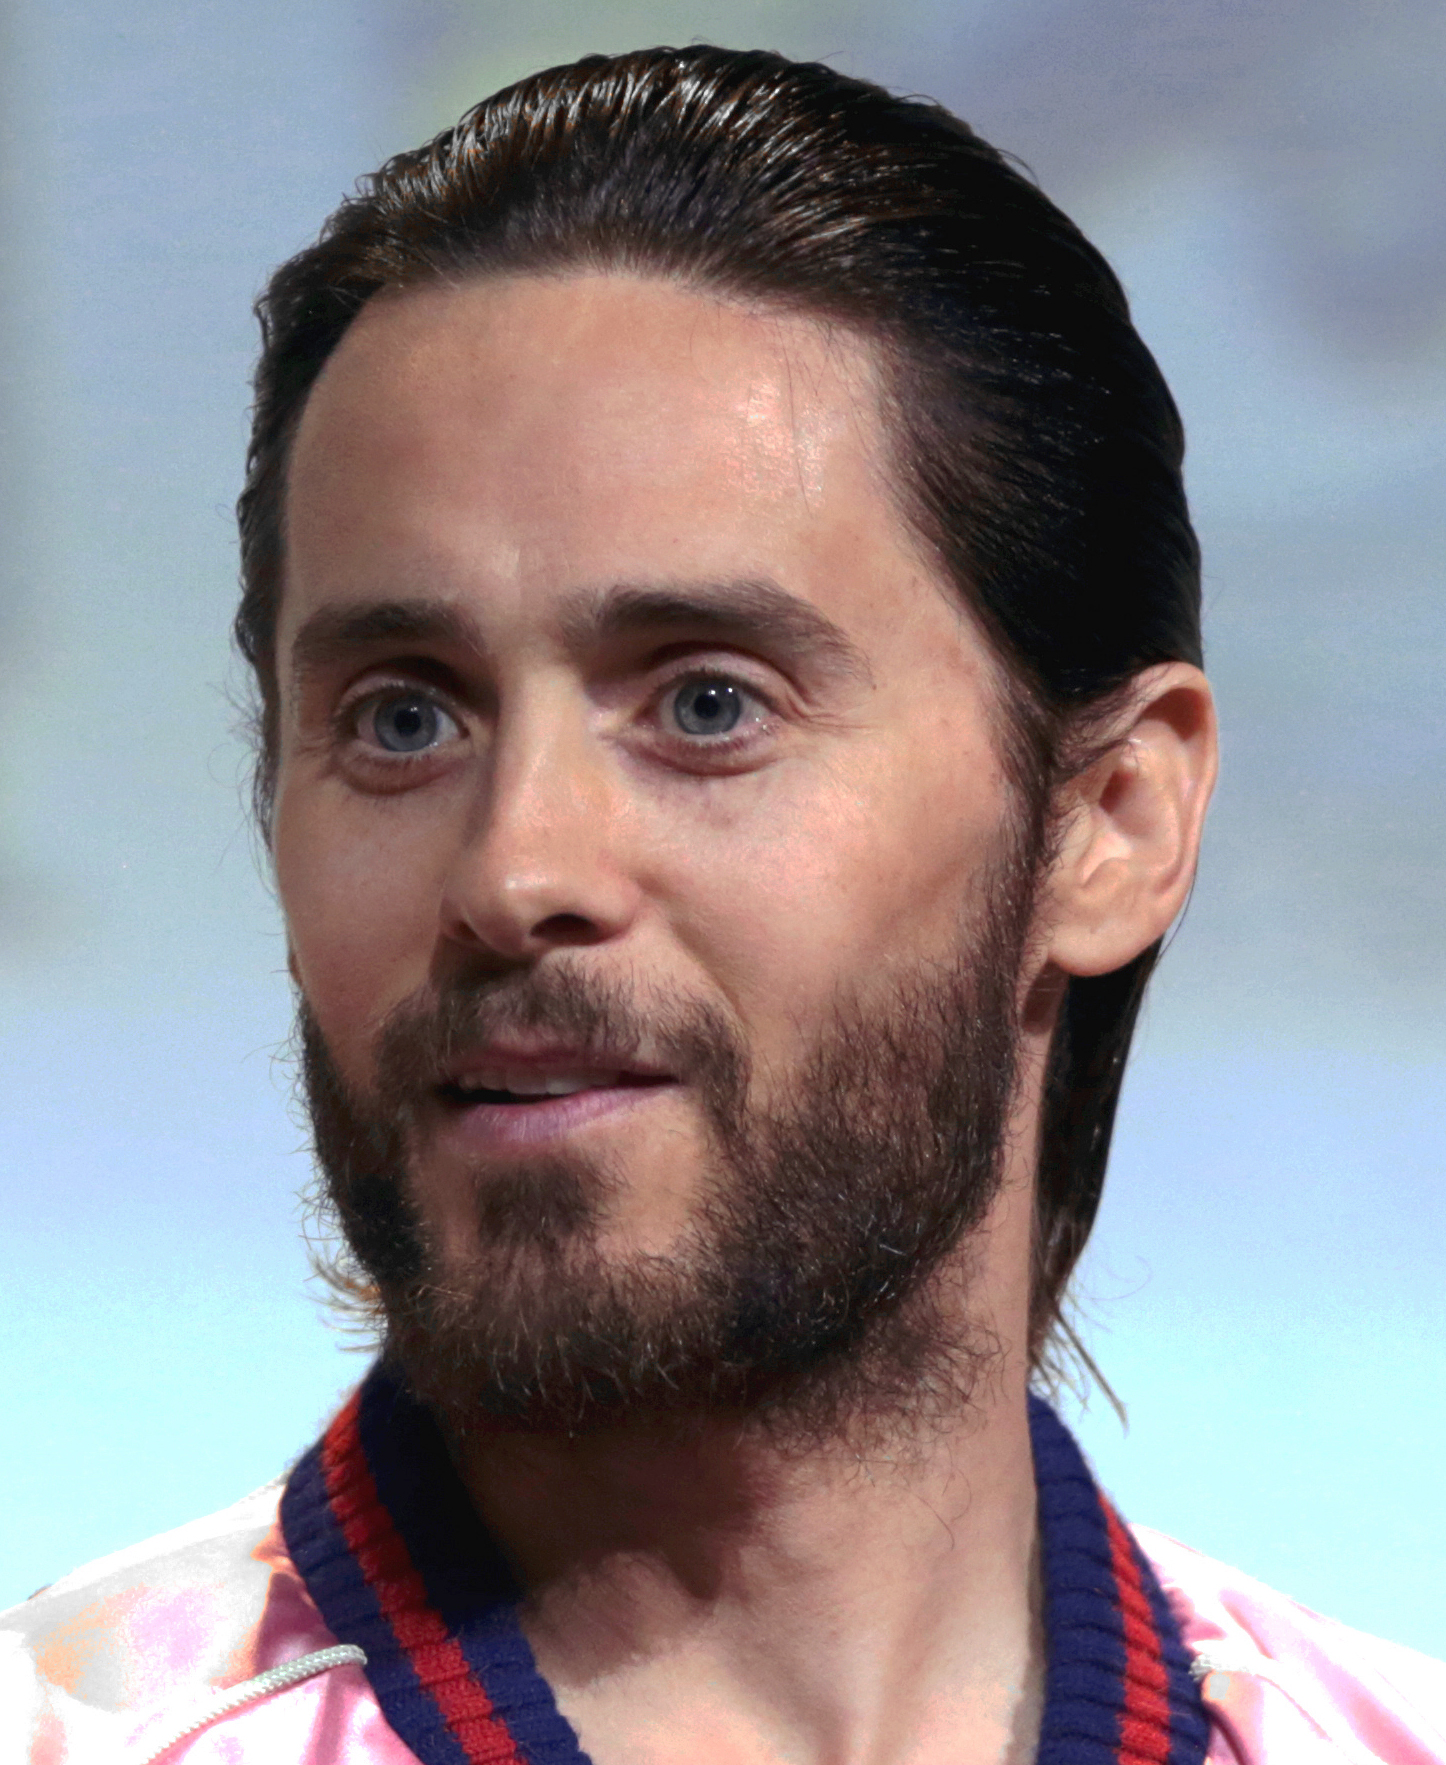 Jared leto girl interupted congratulate, this